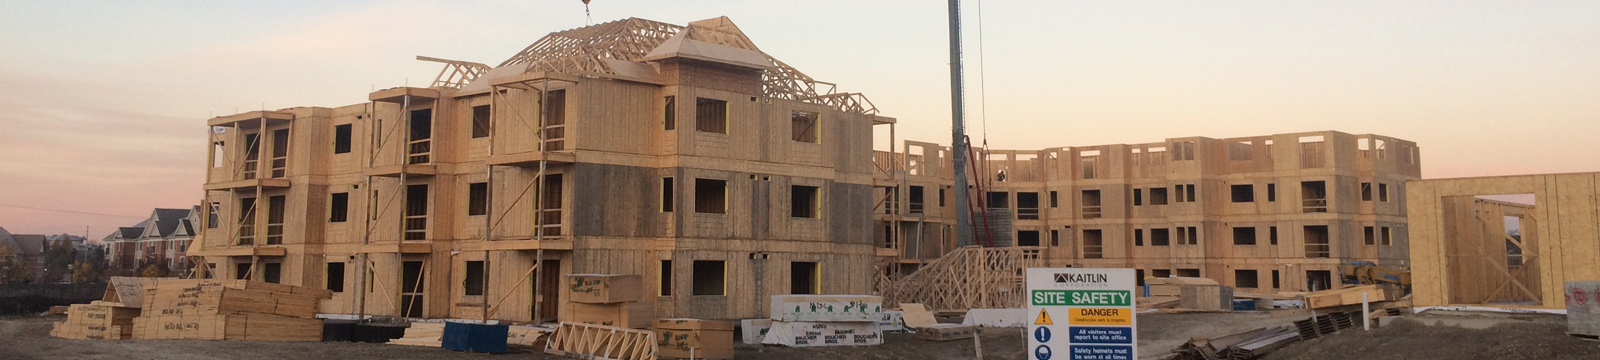 <p>Professional, Fast, Dependable Mid-Rise Residential Framing Services At Phoenix Mid-Rise Panel Inc.</p>